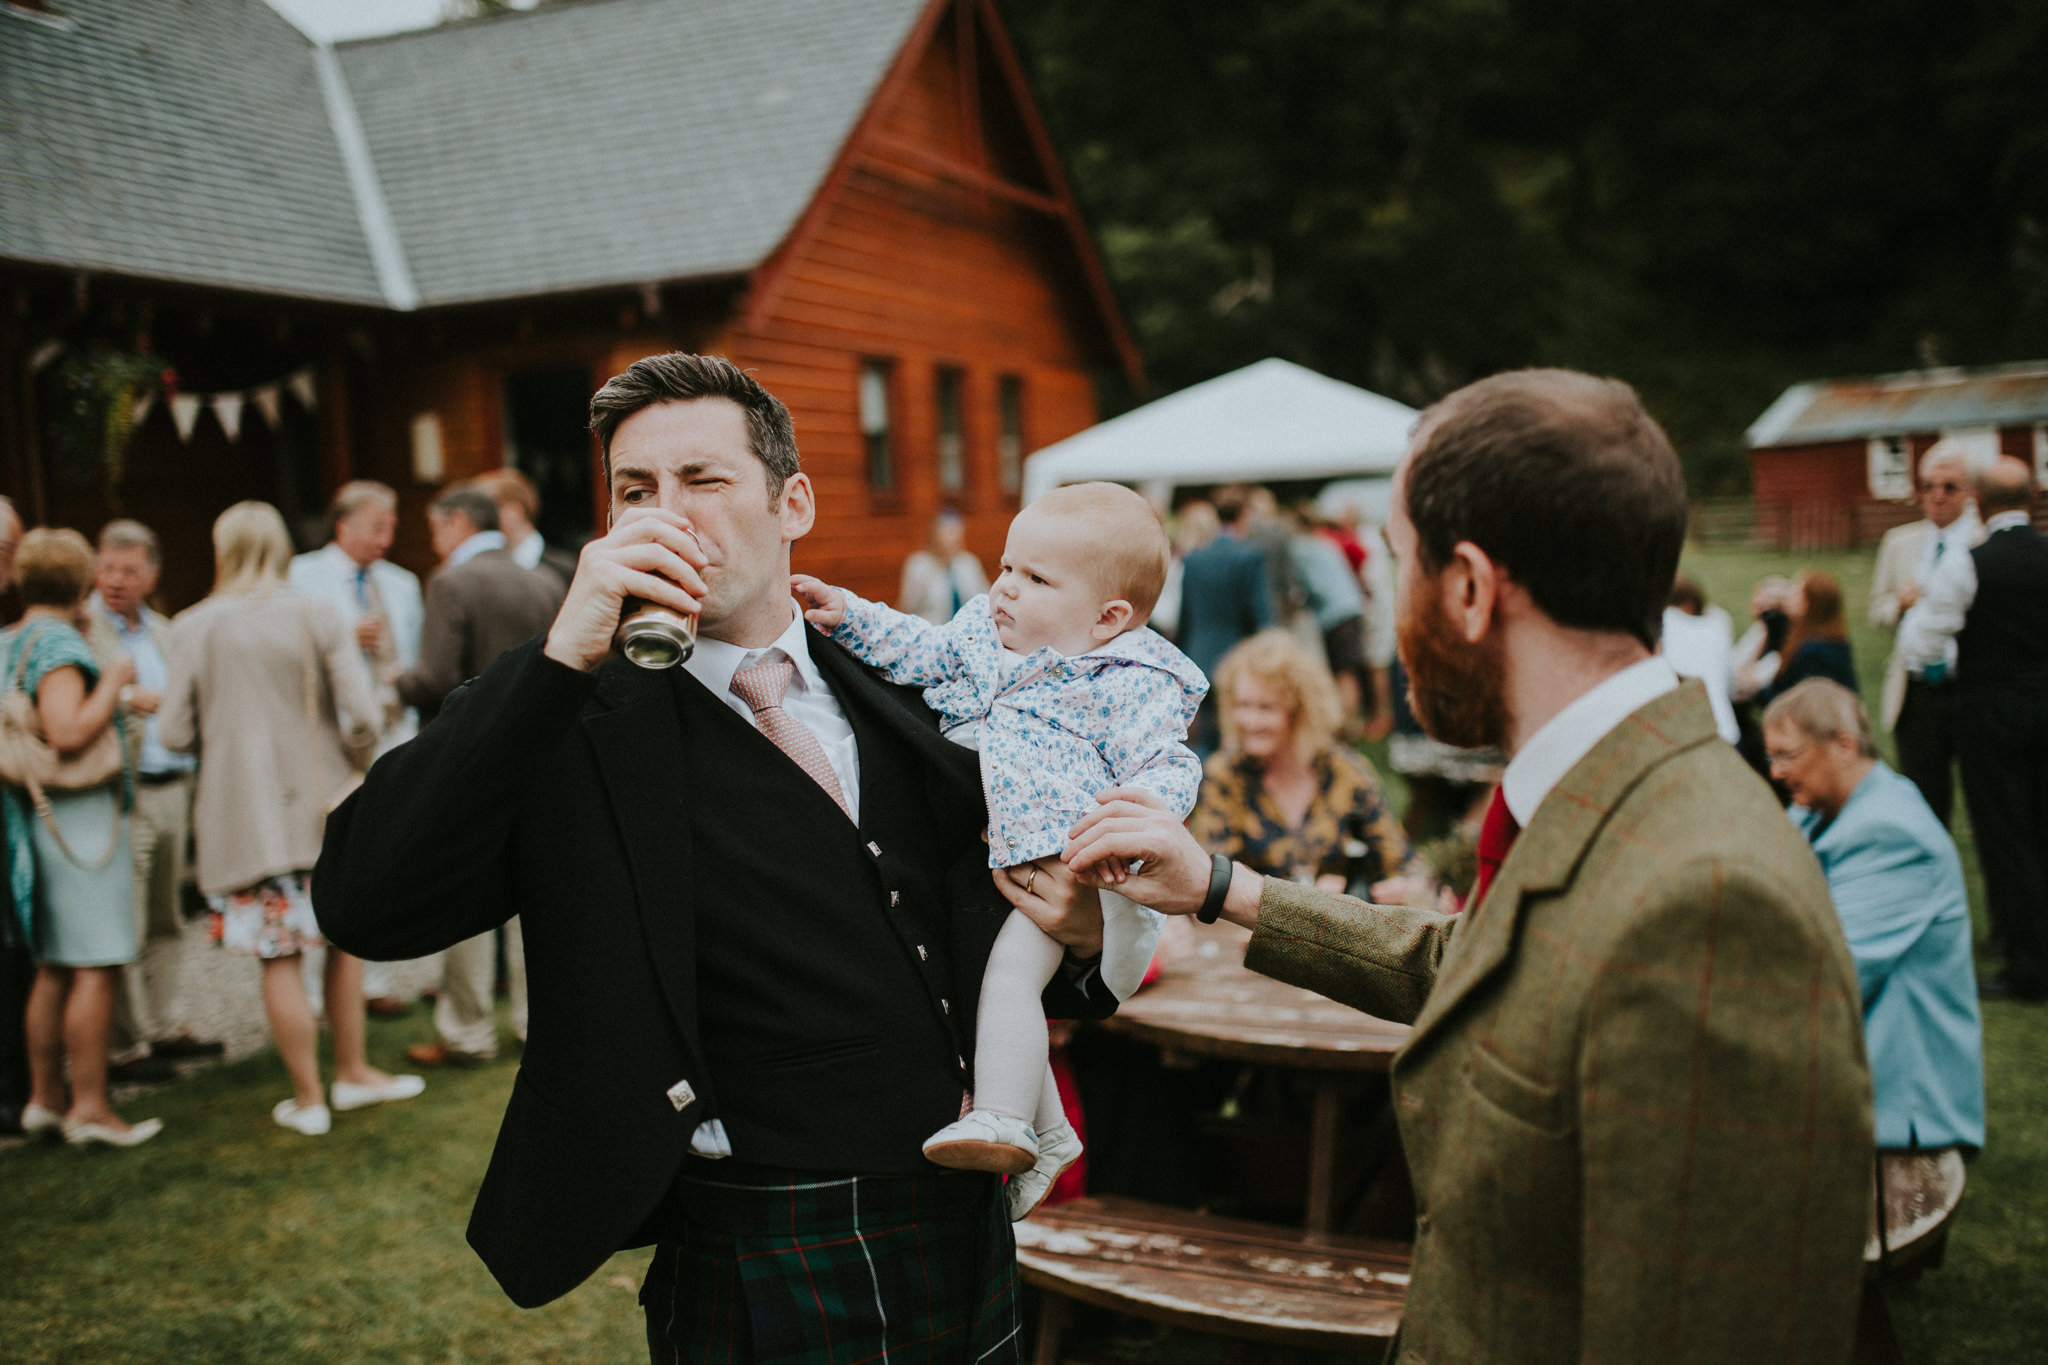 A wedding guest is holding a baby, drinking and standing next to another wedding guest.